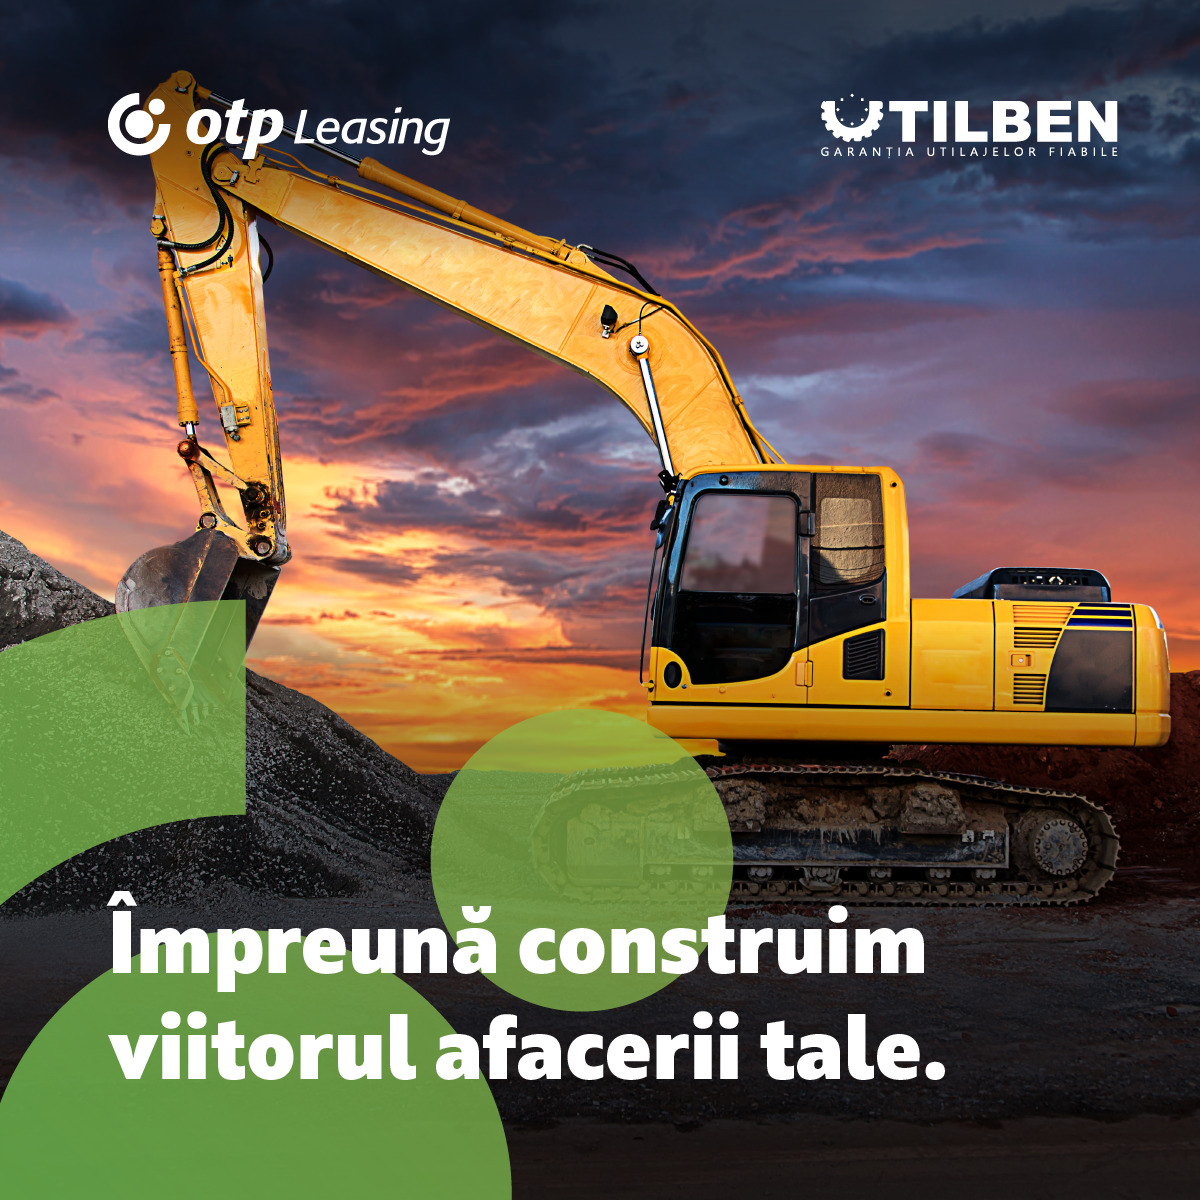 OTP Leasing and Utilben